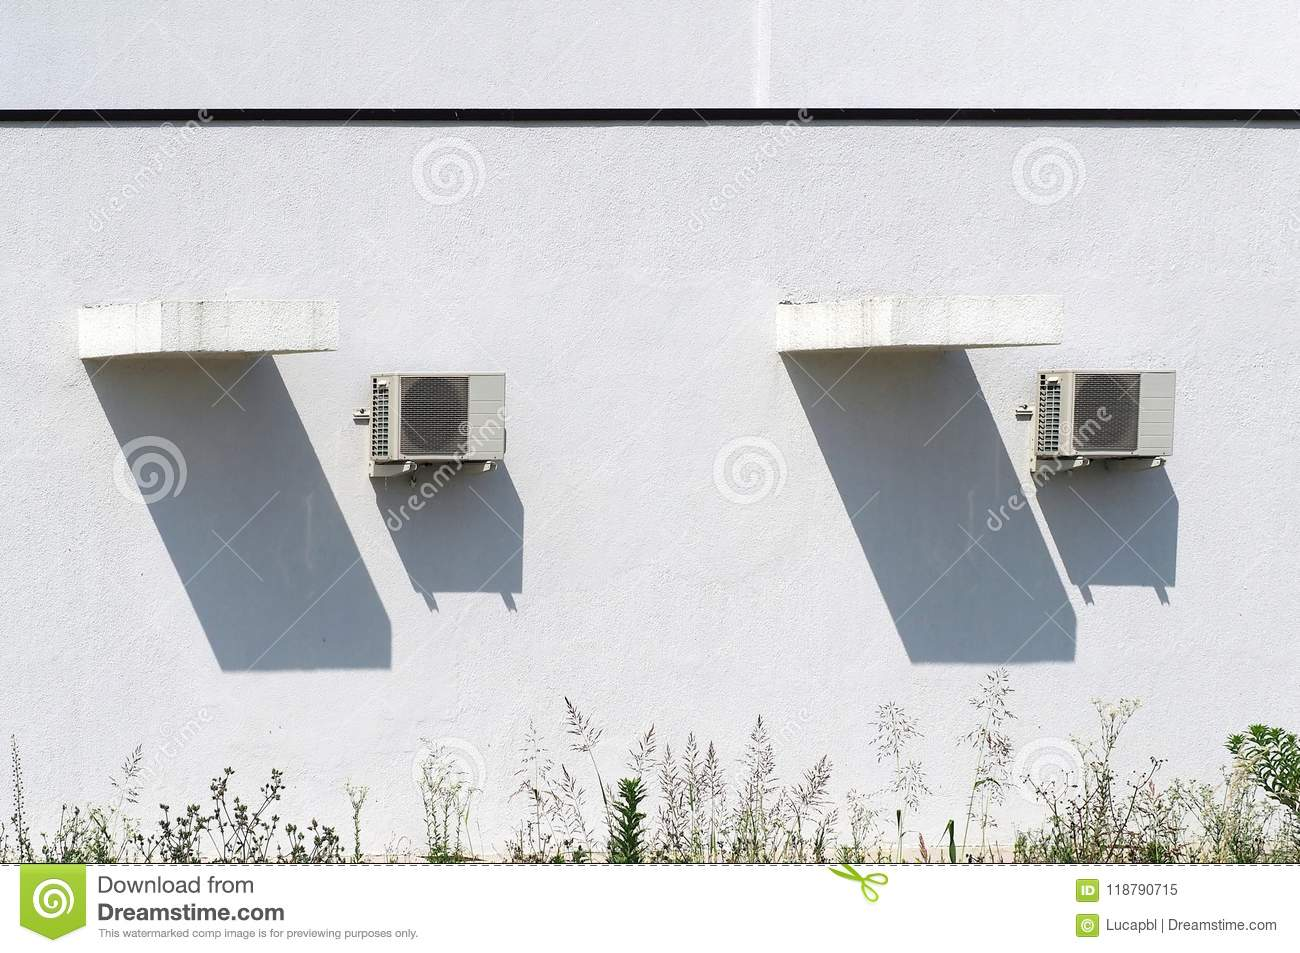 Two exteriors air conditioning units and their long shadows on a home white wall, under a hot summer sunny day